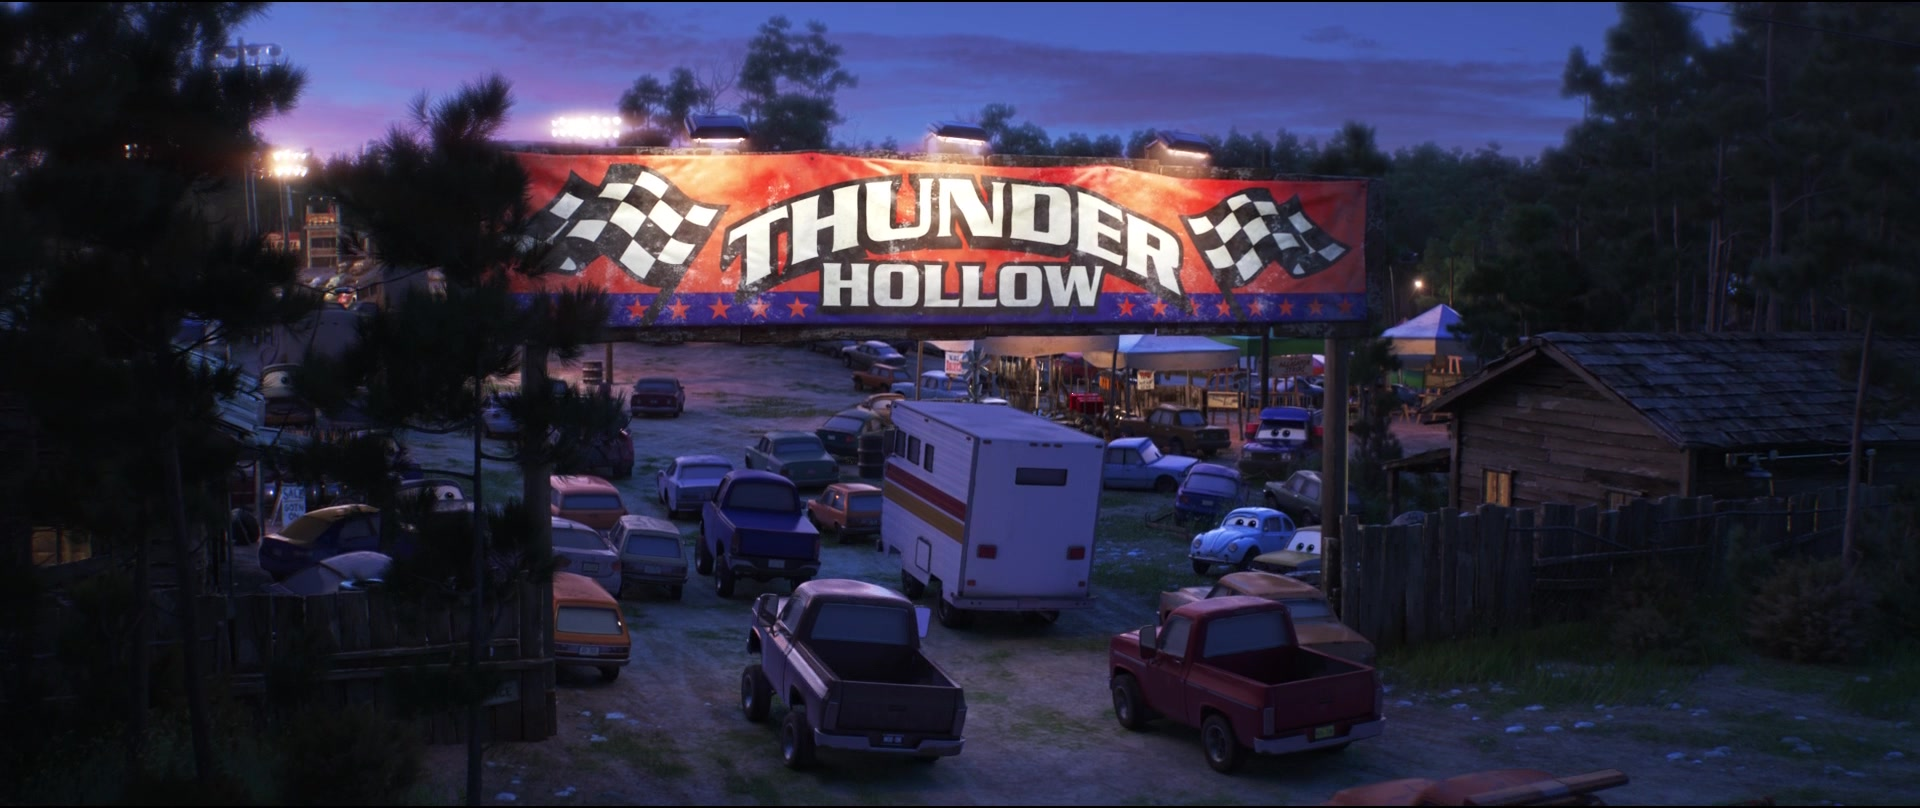 Thunder hollow world of cars wiki fandom powered by wikia - Coloriage cars 3 thunder hollow ...